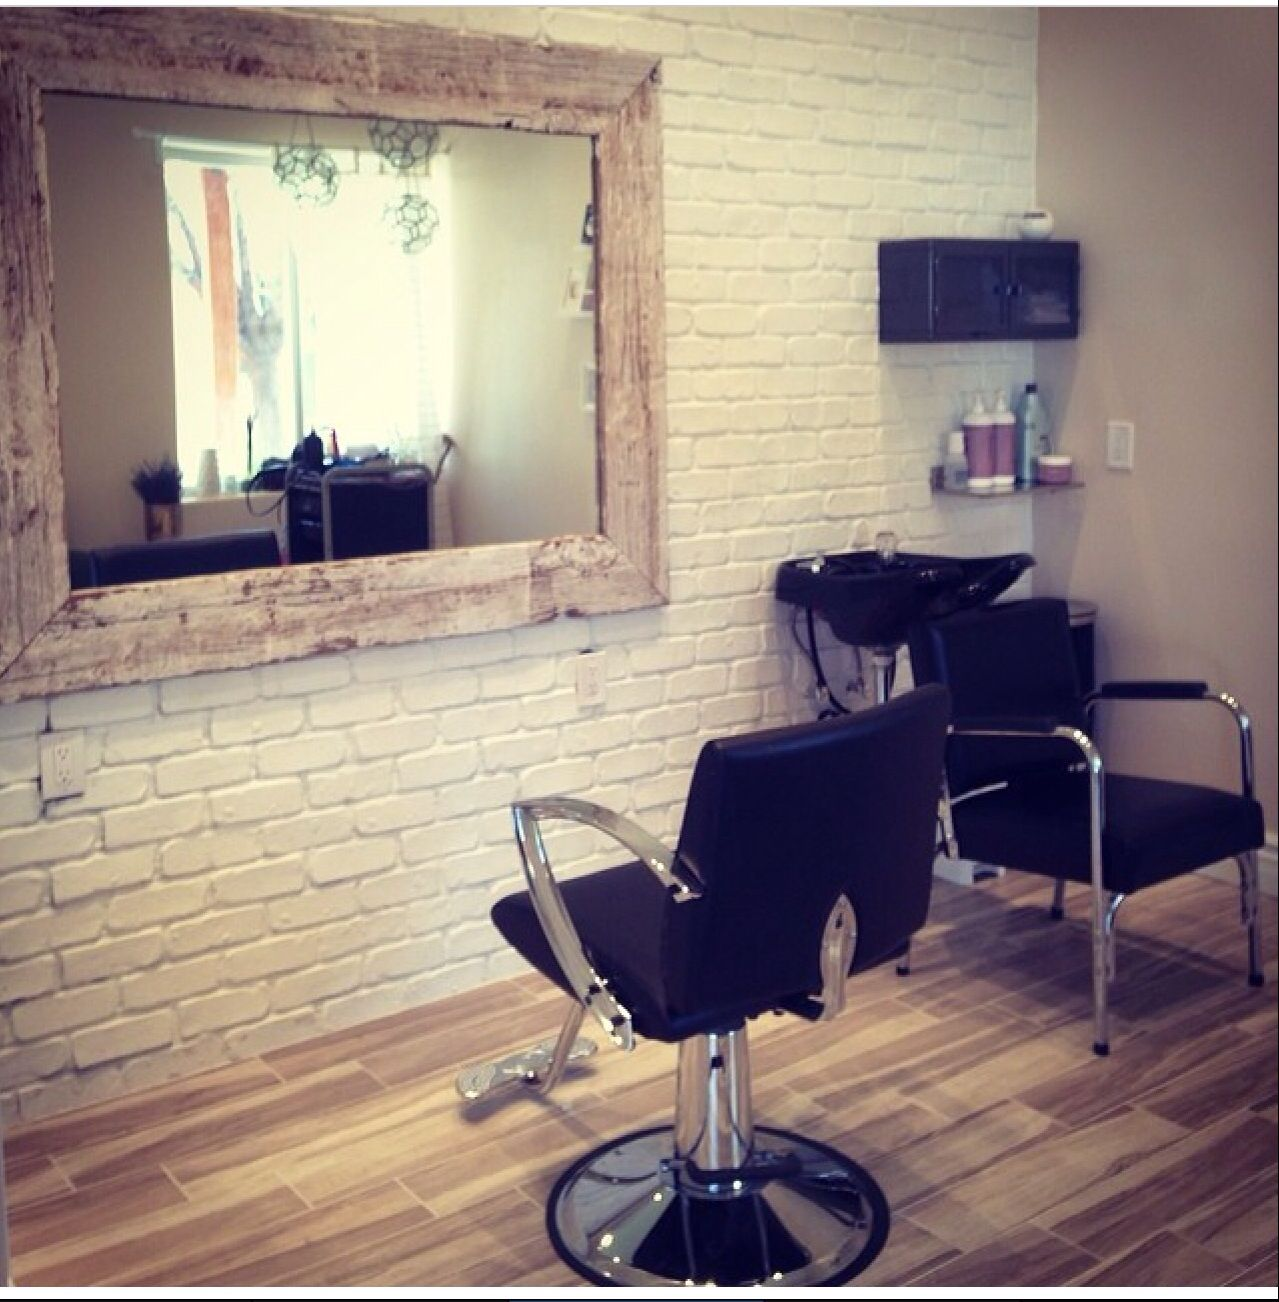 Hair Haus #salon #home  Home salon, Home hair salons, Salon decor